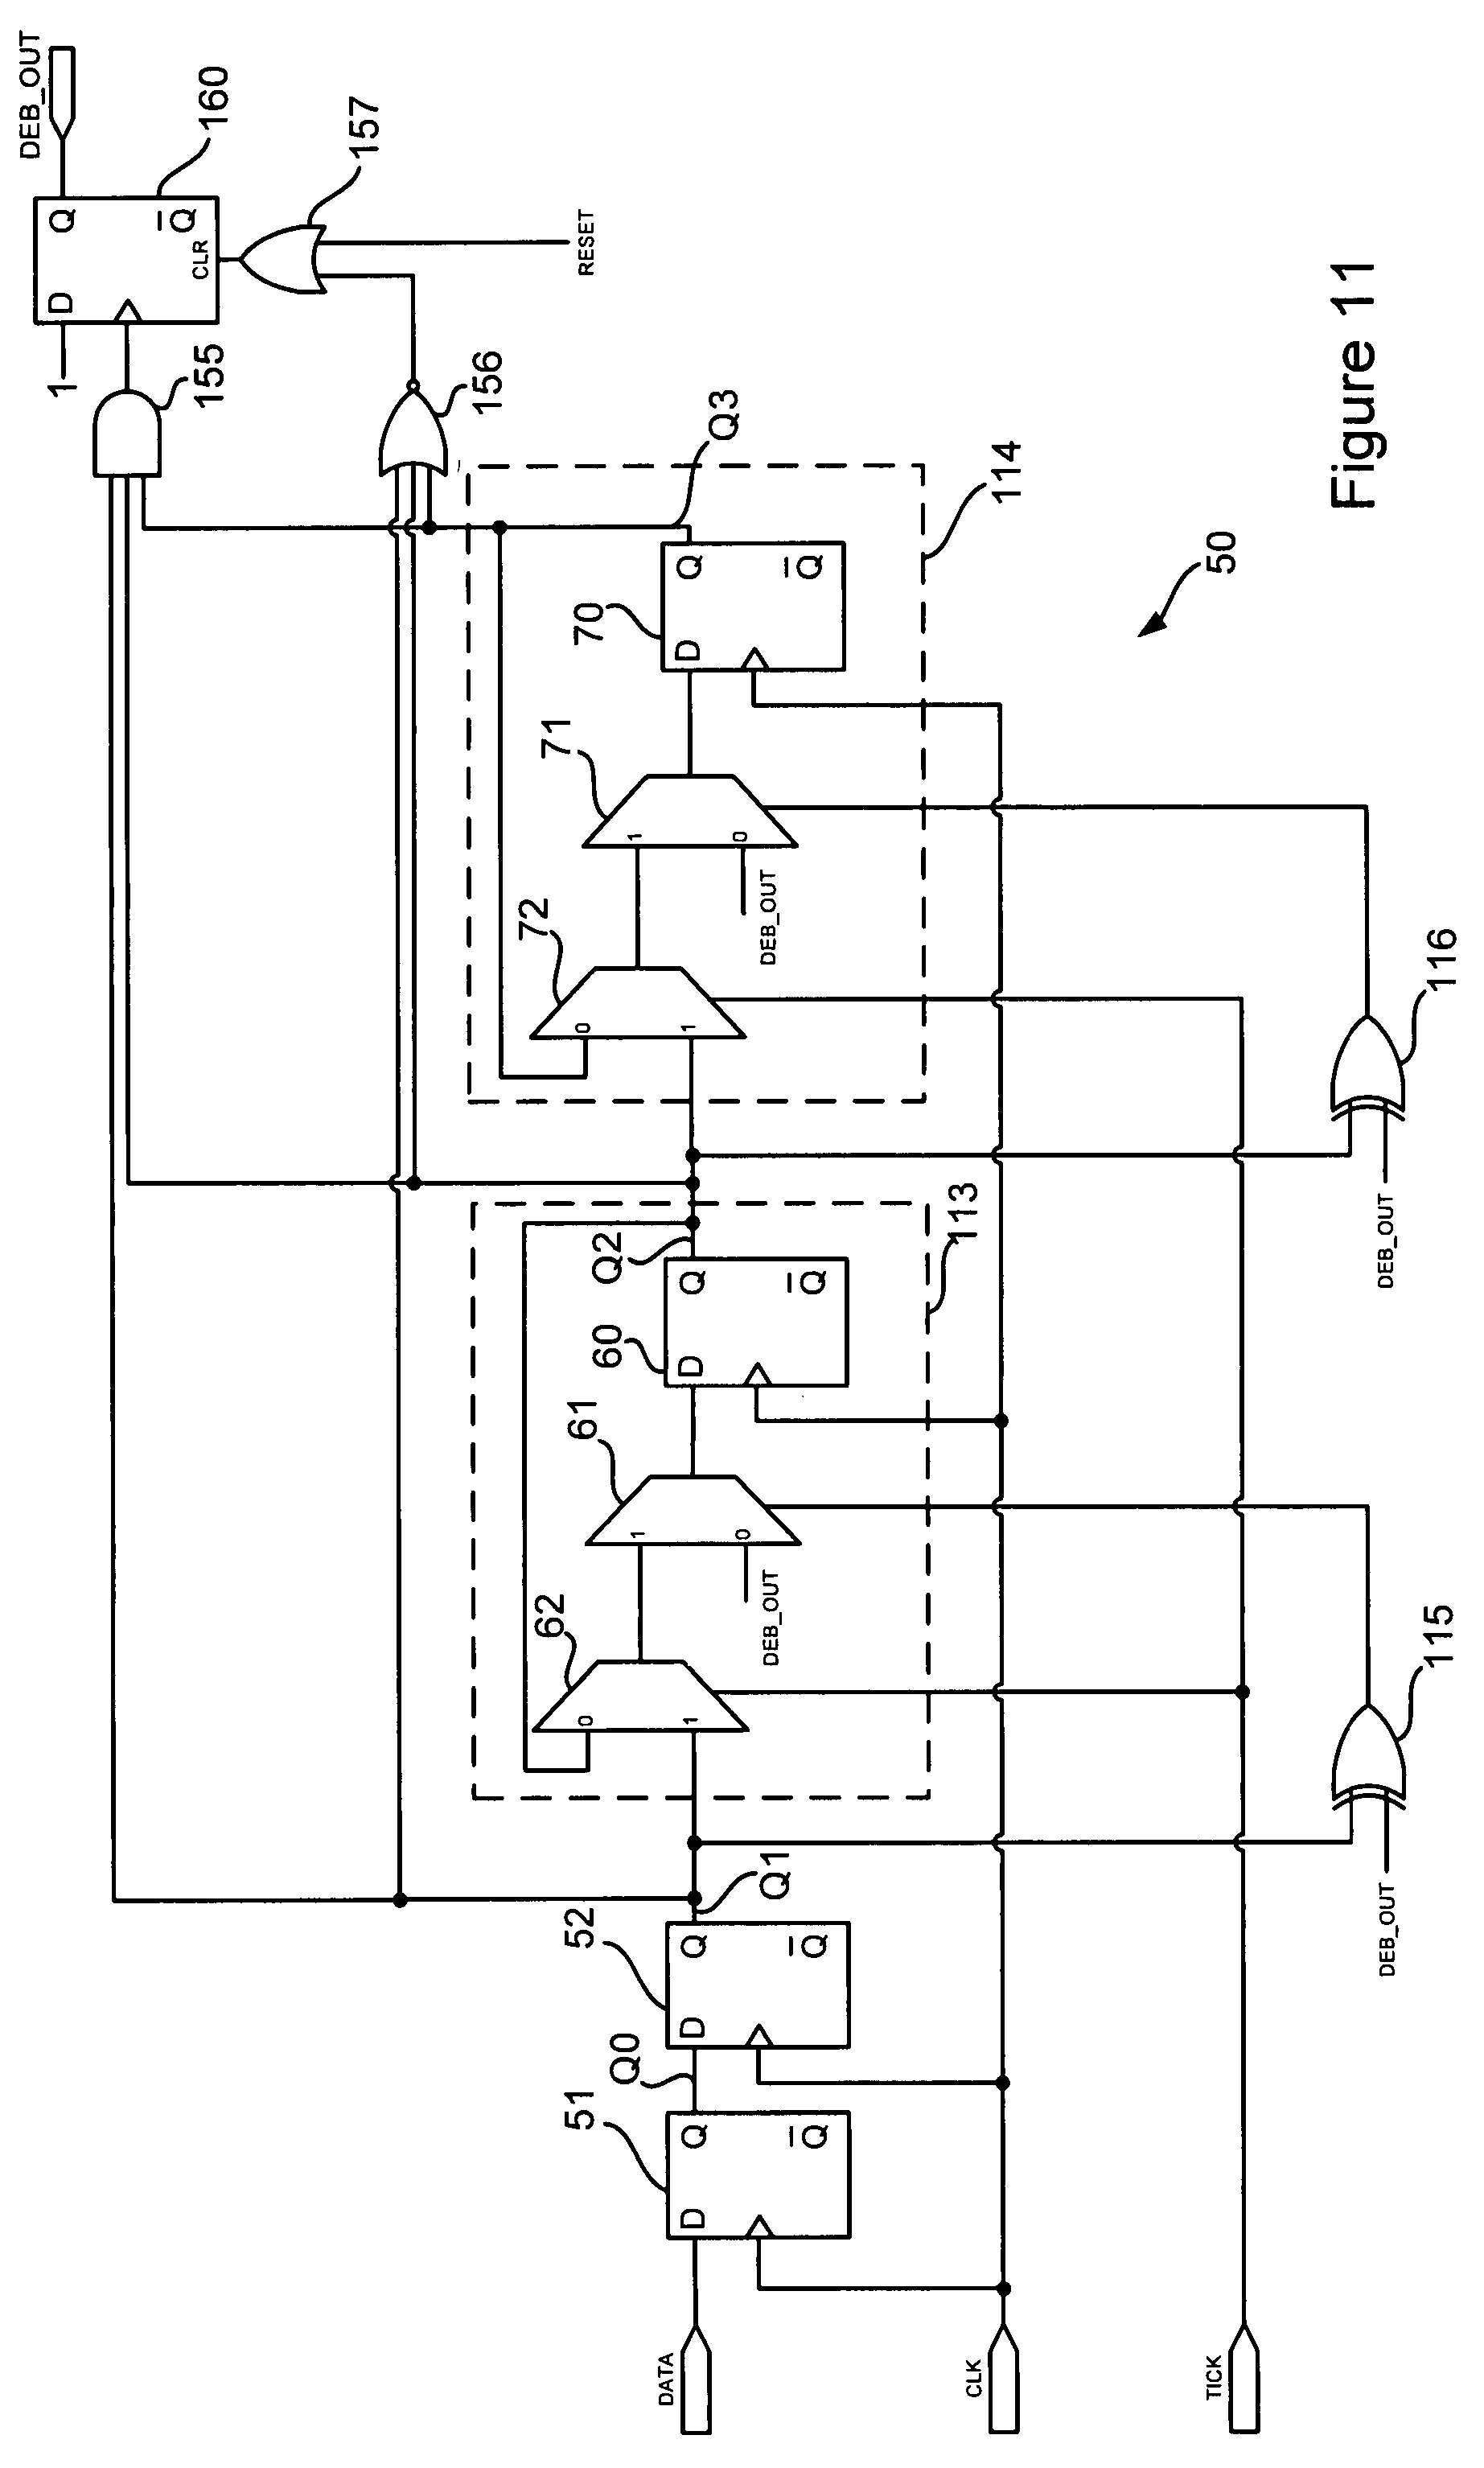 patent us7579894 - debounce circuit and method